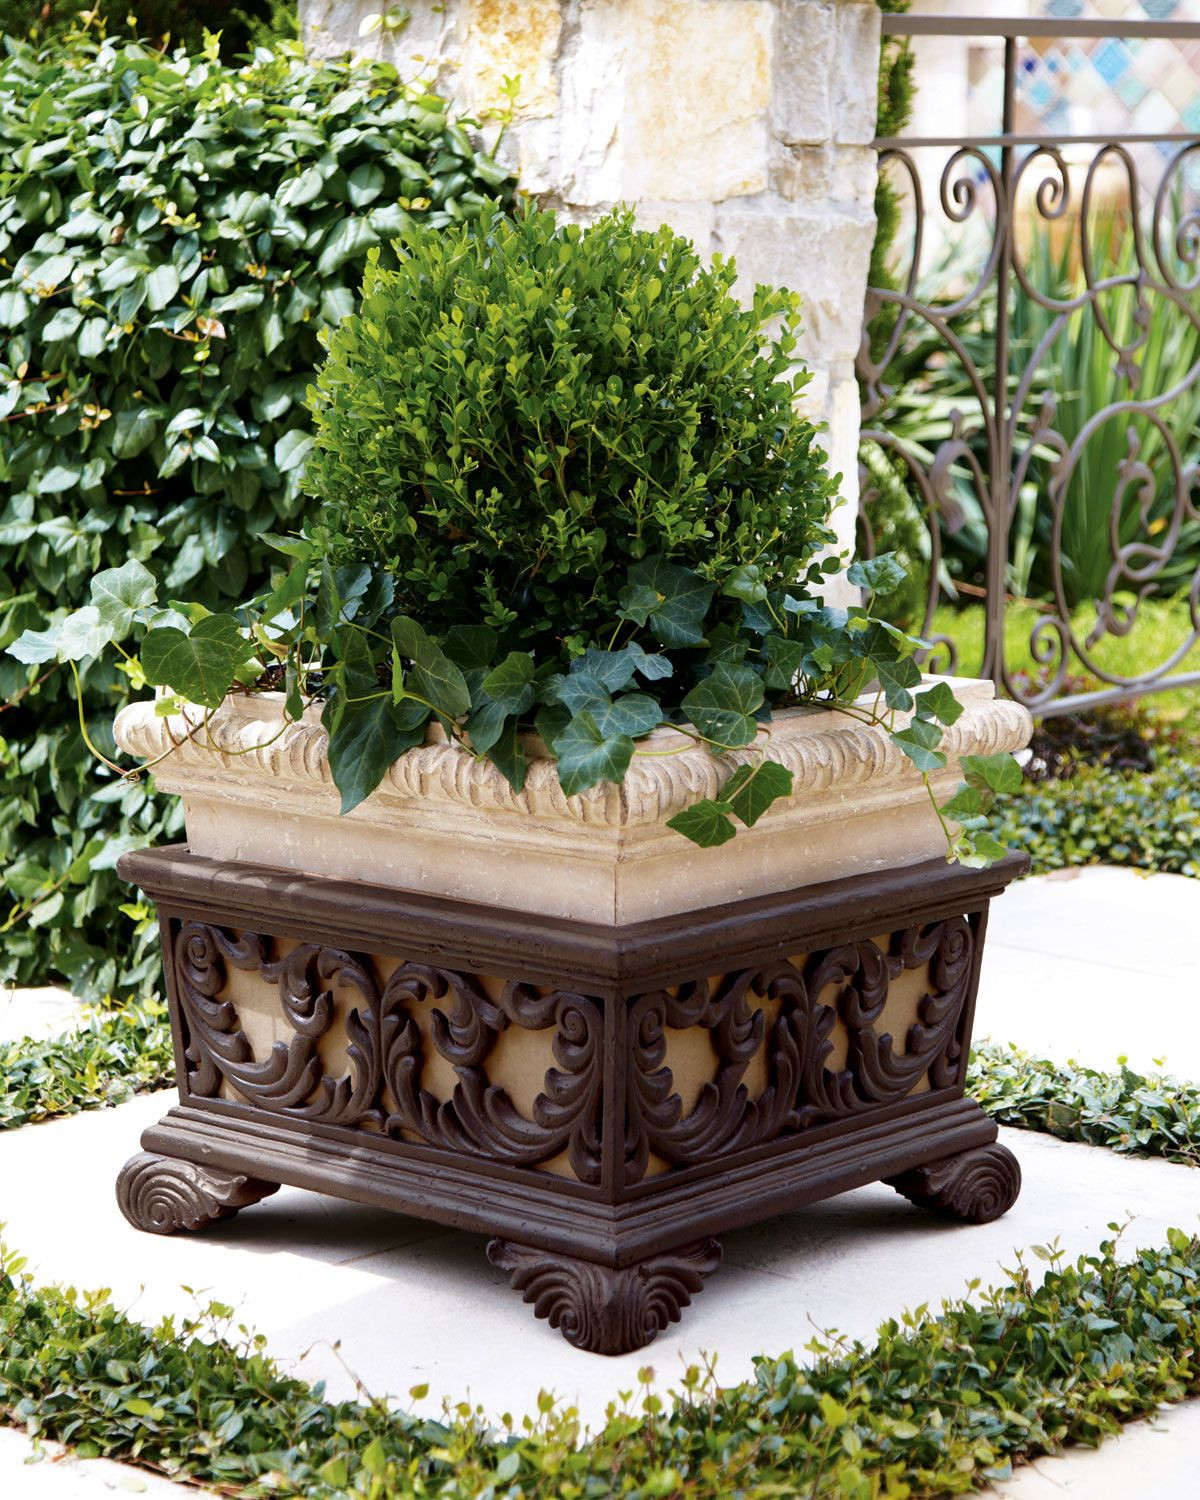 Square Vase Stand Of Square Planter with Stand Scroll Design Brown Finish and Planters Regarding Square Planter with Stand Add form and Function to Your Patio with This Square Planter Embellished with A Leaf Scroll Design An Aged Limestone and Dark